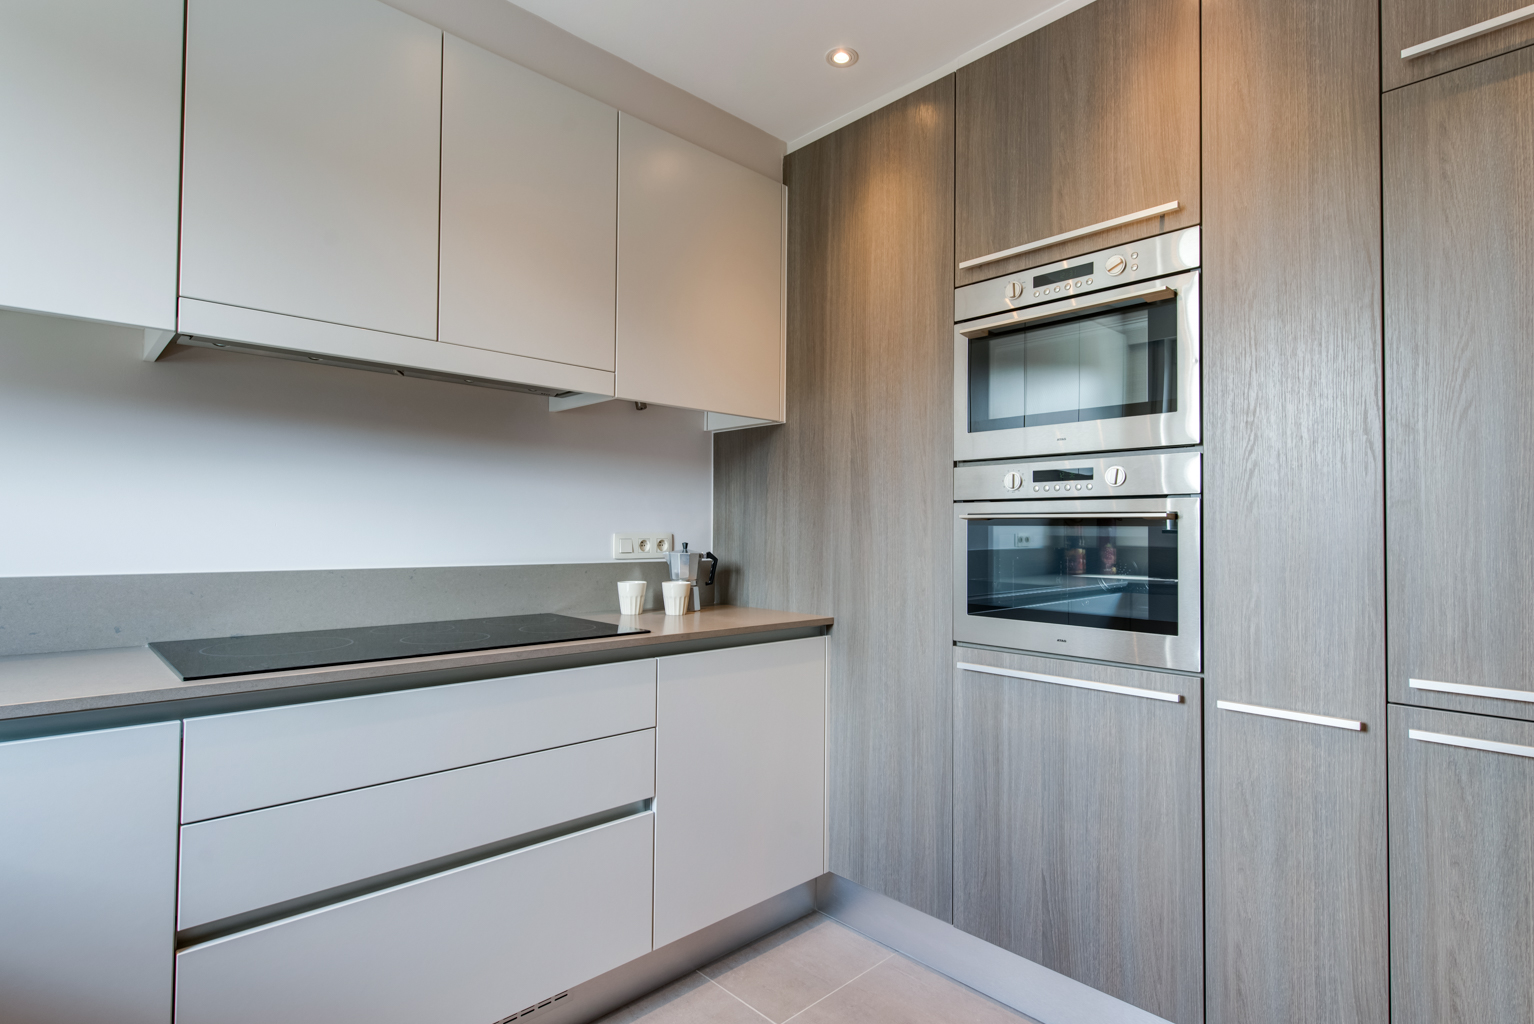 Differend---12---Keuken-modelappartement-Aartselaar